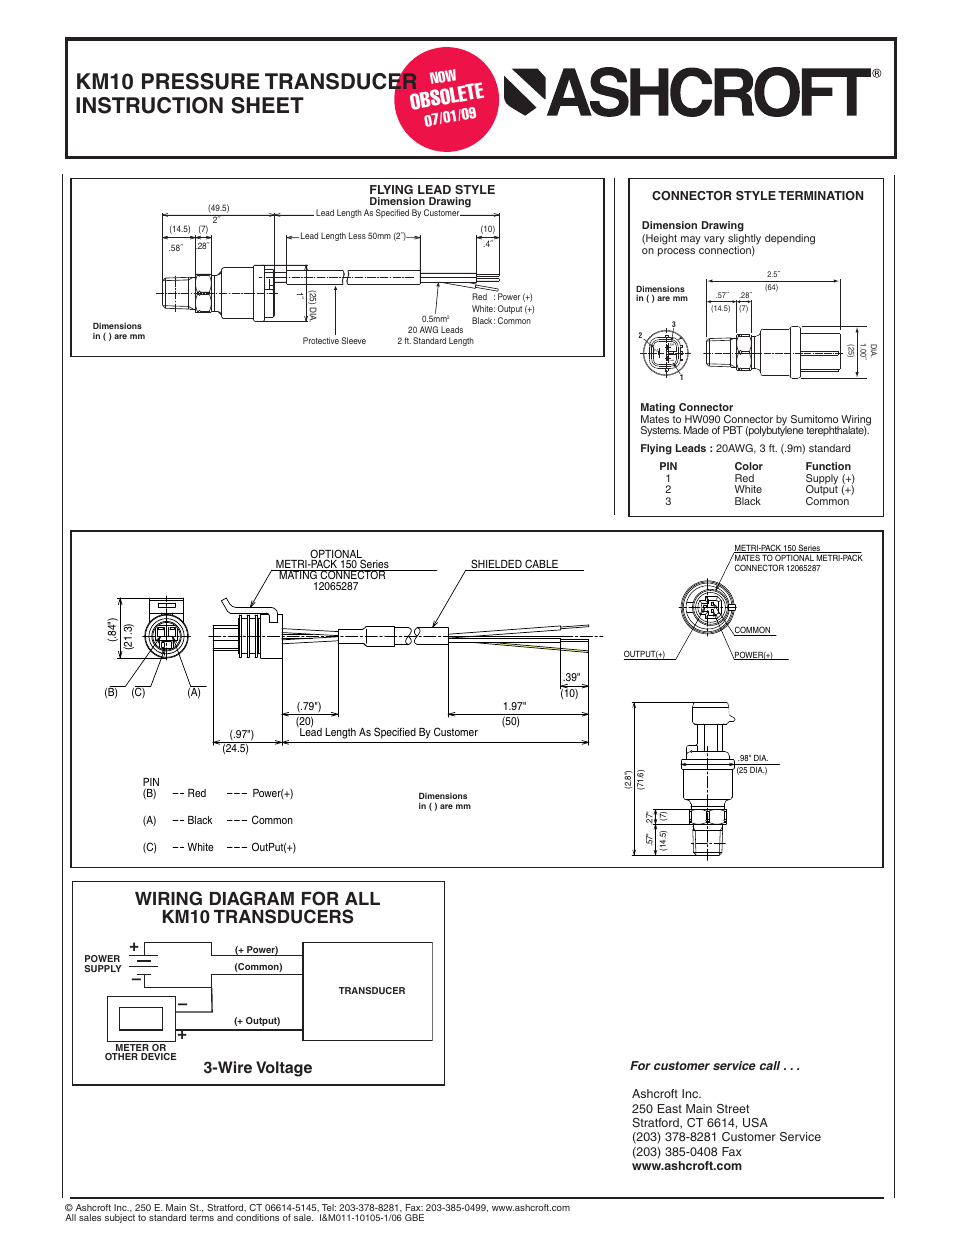 ashcroft pressure transducer wiring diagram 1984 honda goldwing gl1200 obsole te km10 instruction sheet for all transducers compact user manual